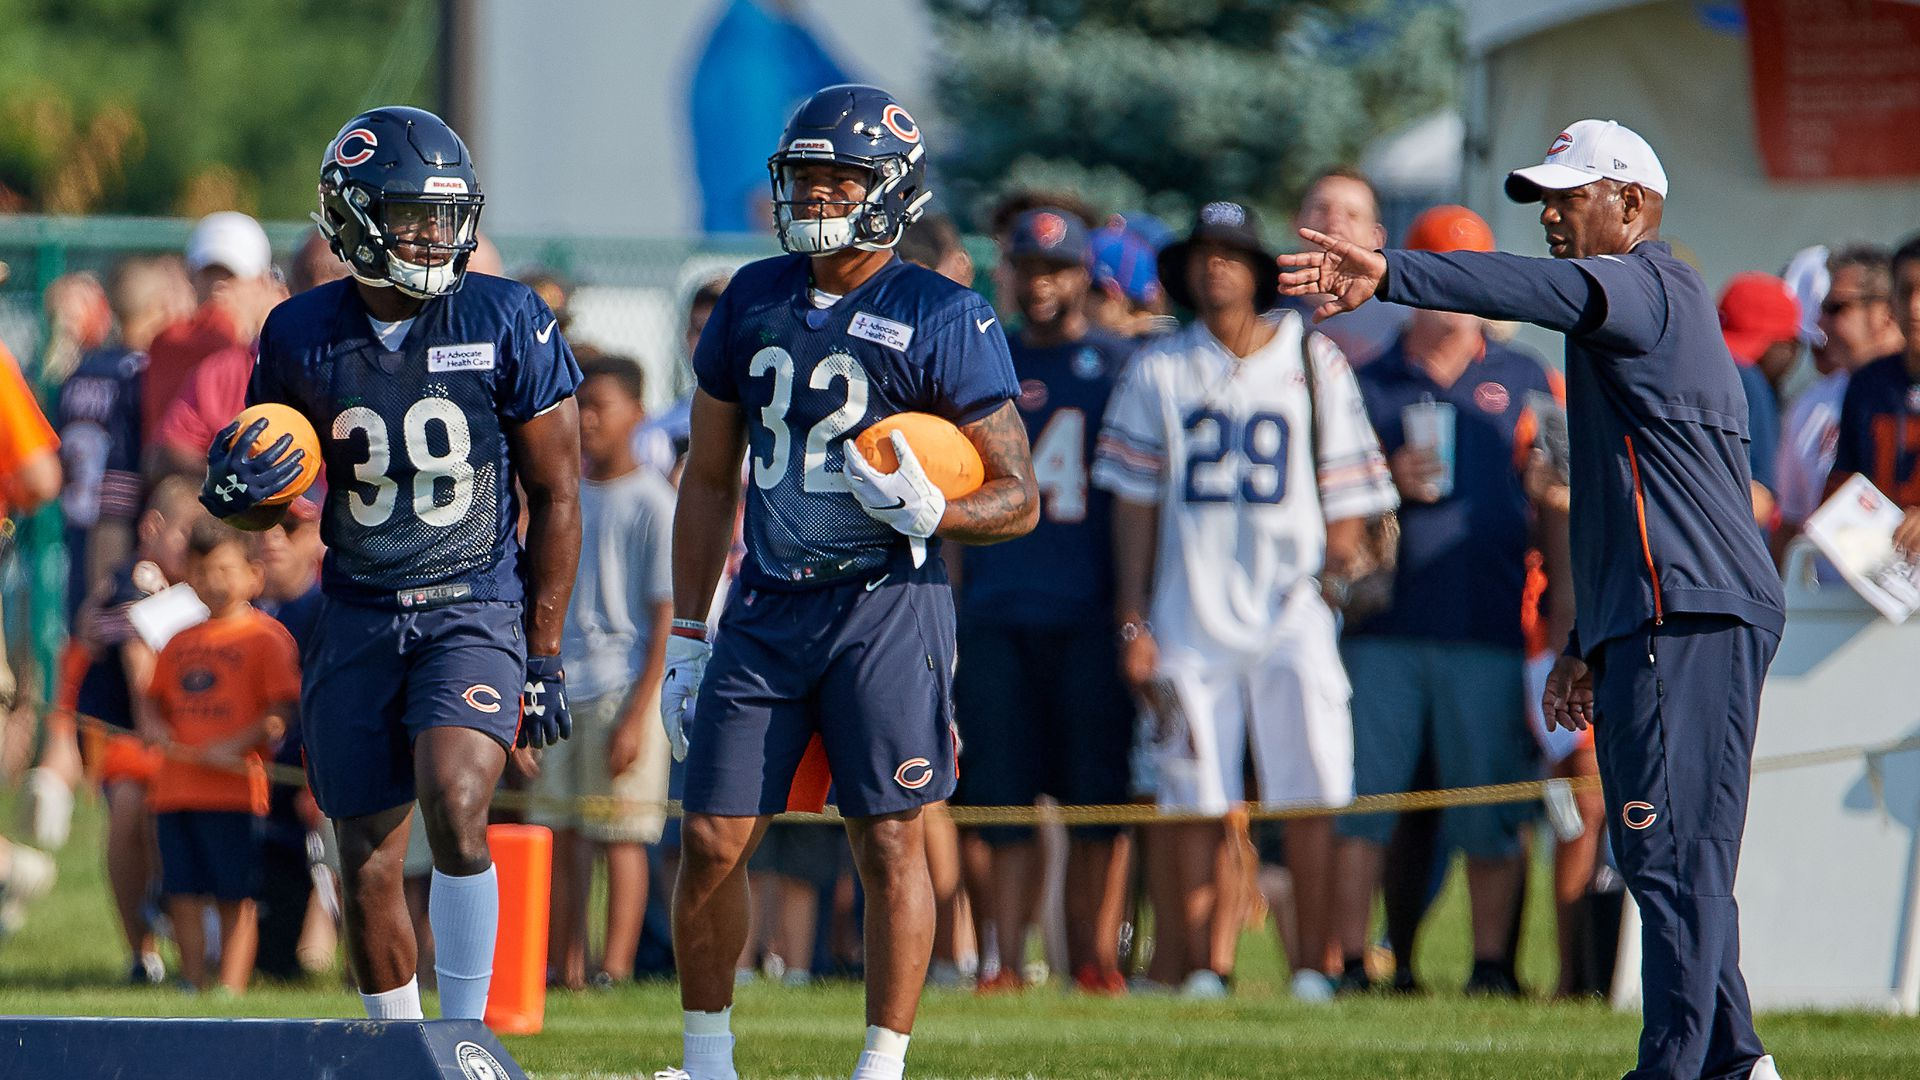 Chicago Bears players at training camp